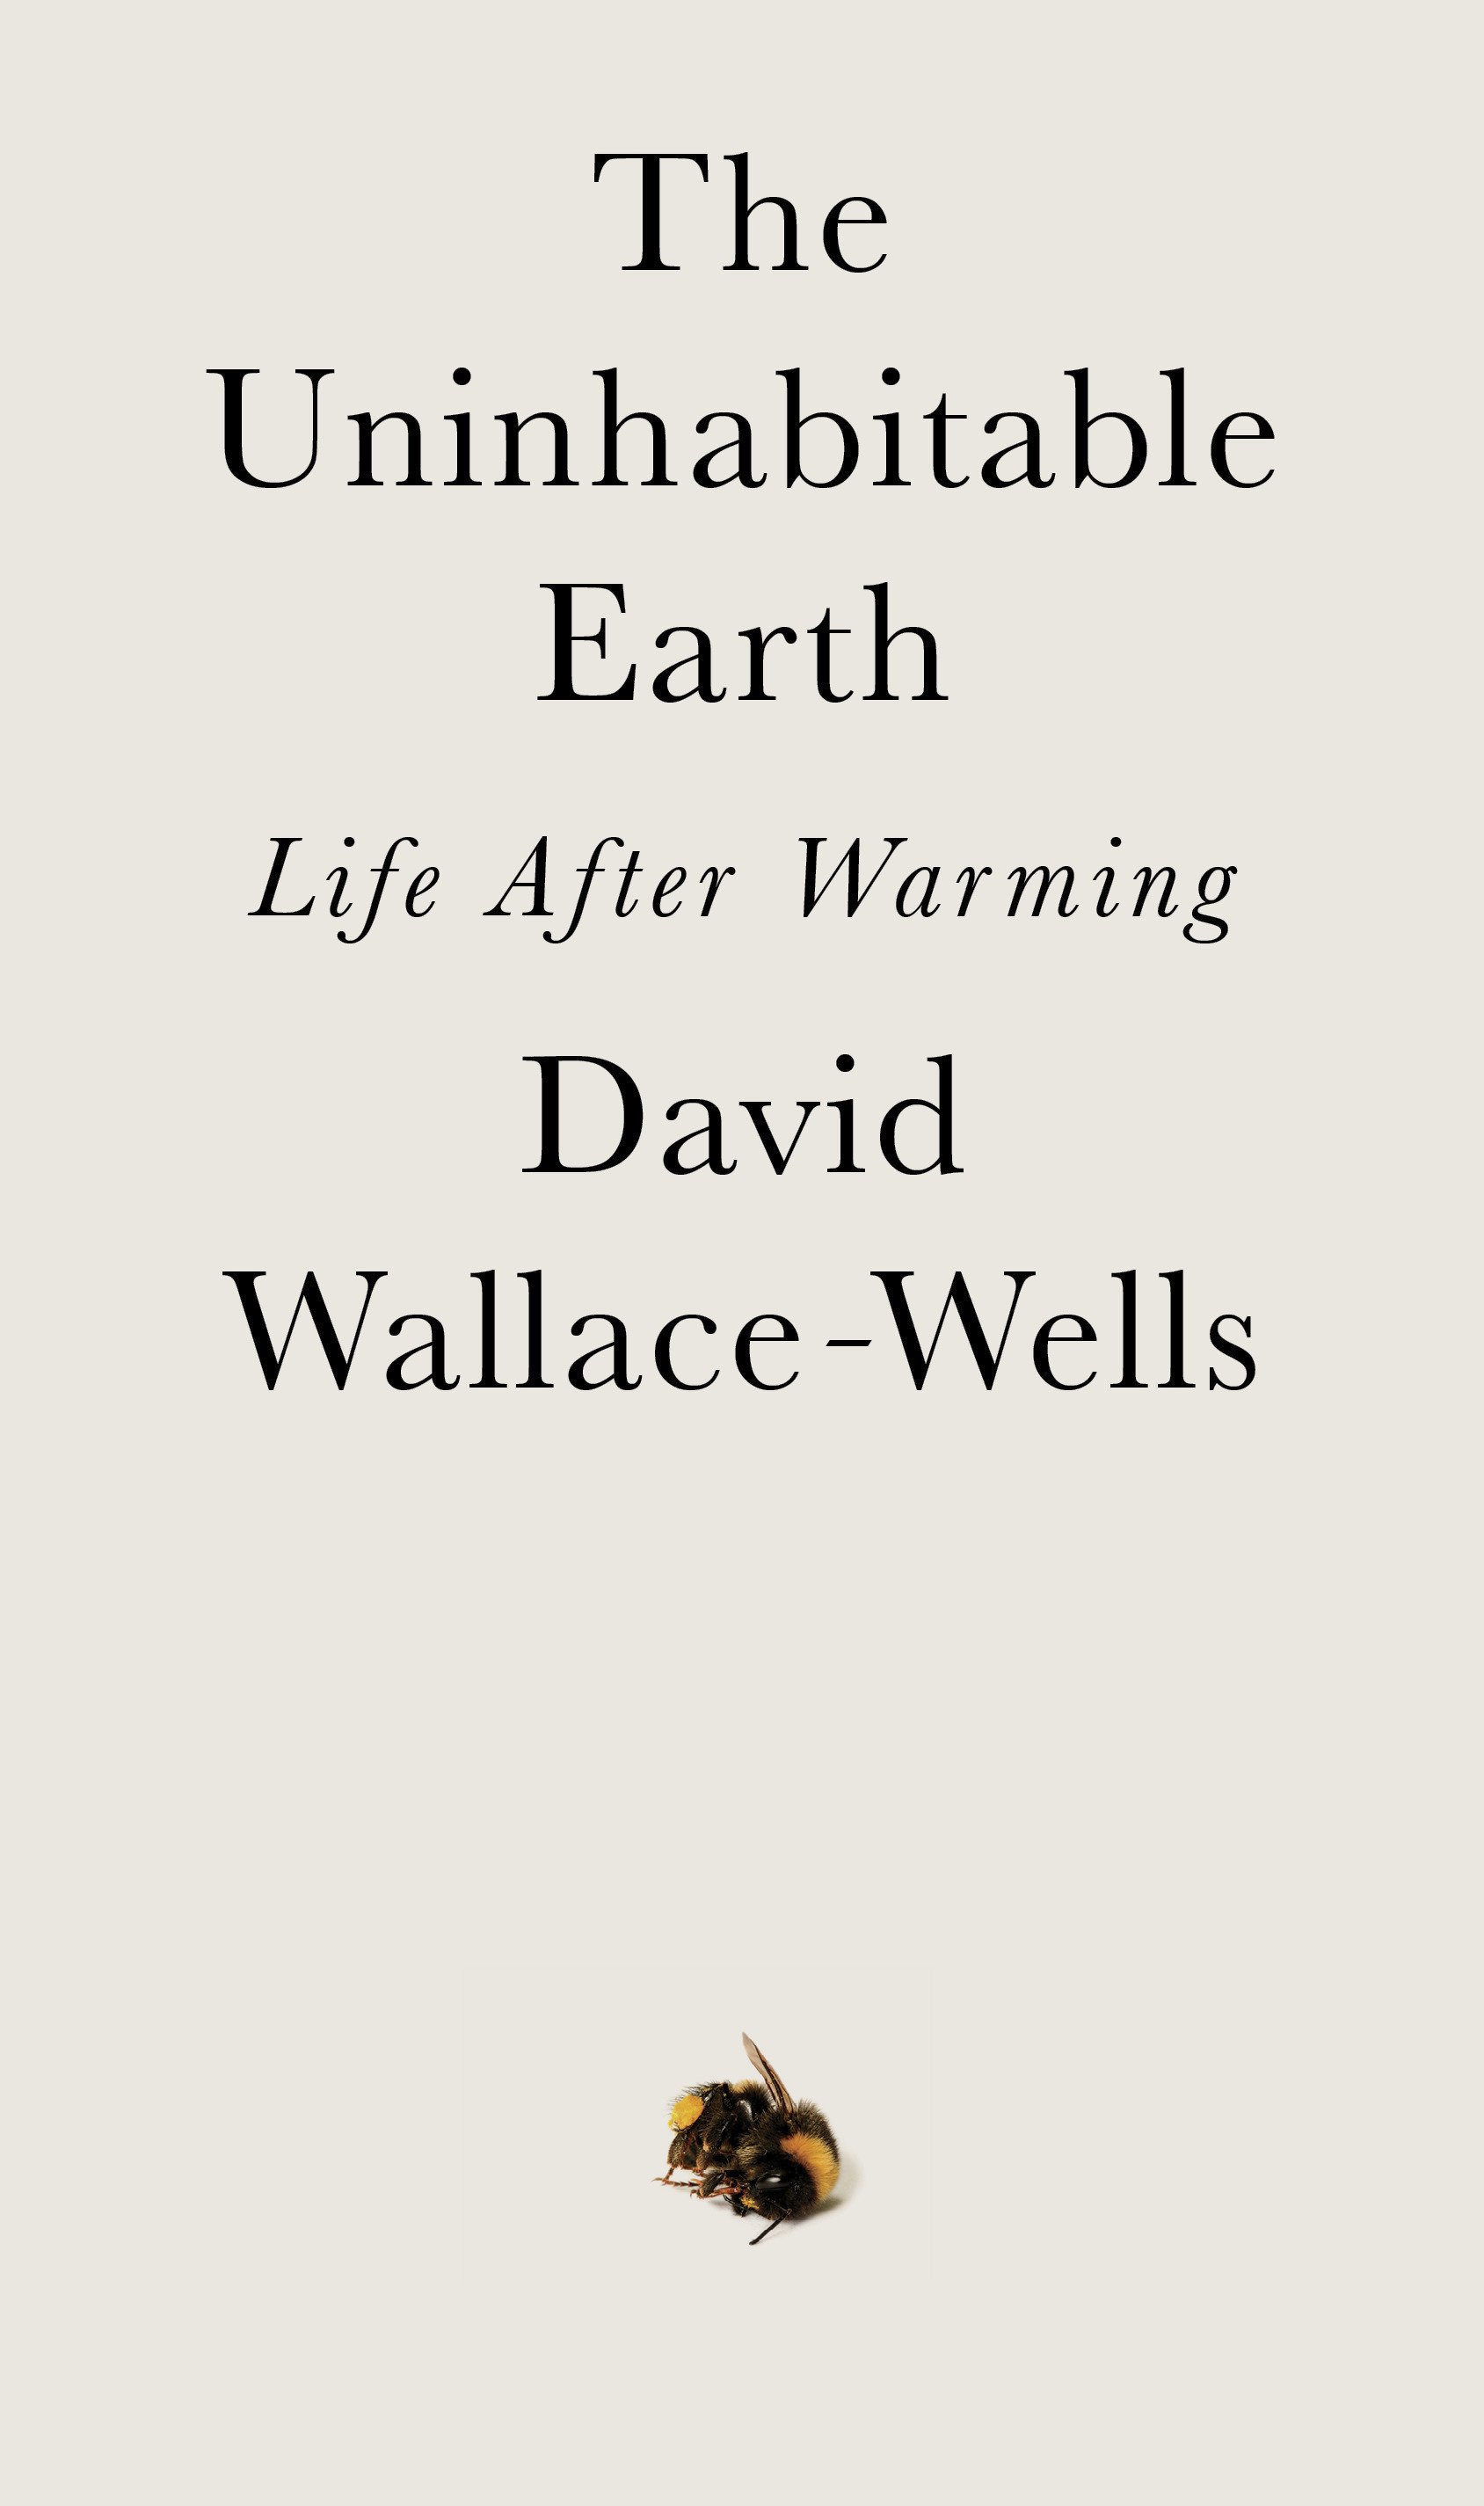 Review: 'The Uninhabitable Earth' explores climate doomsday